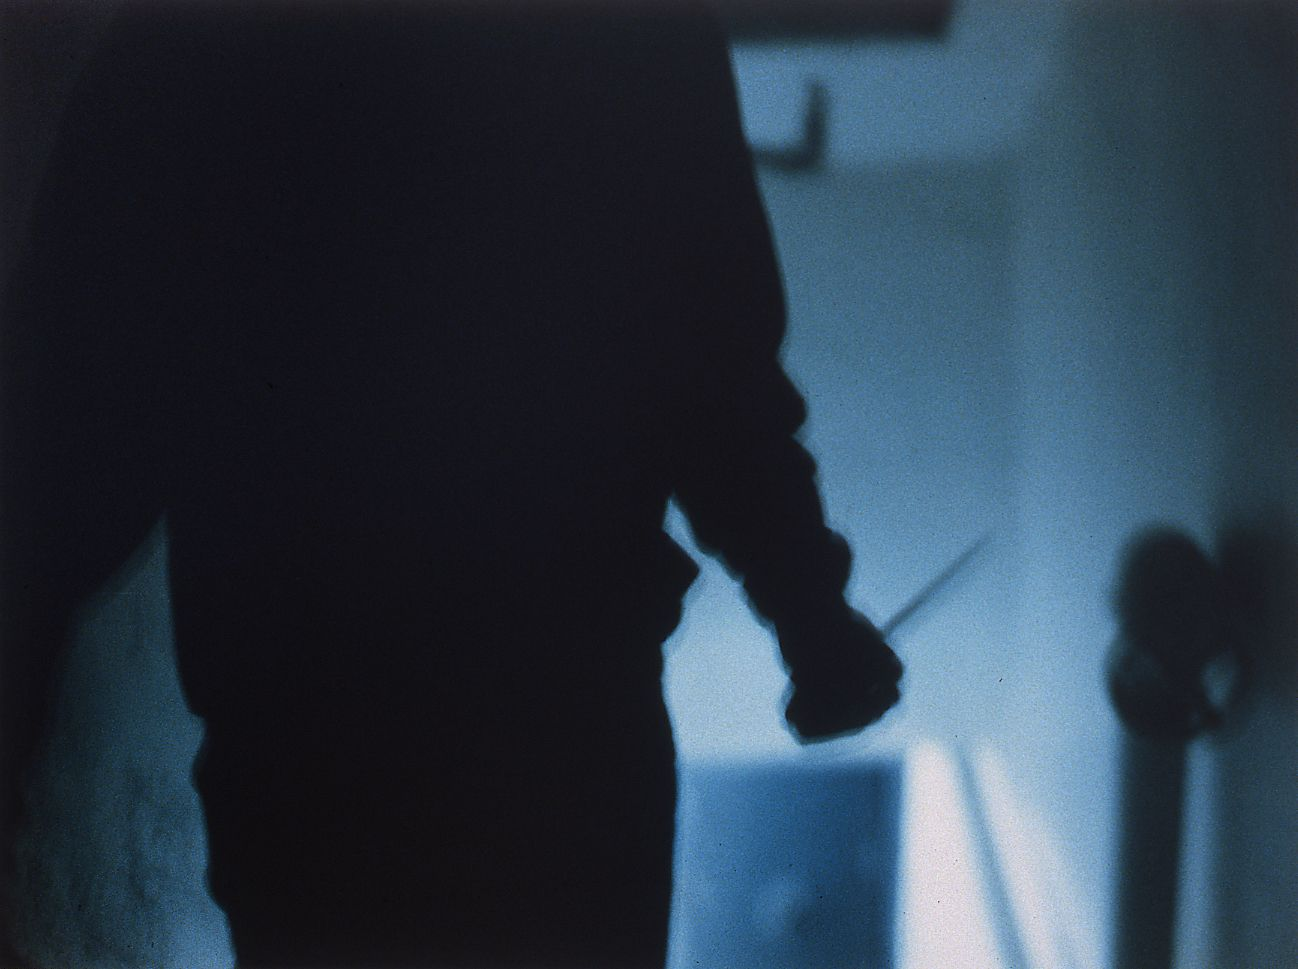 Josephine Meckseper, The Great Escape (Man with a knife), 1996, c-print, 30 x 40 inches